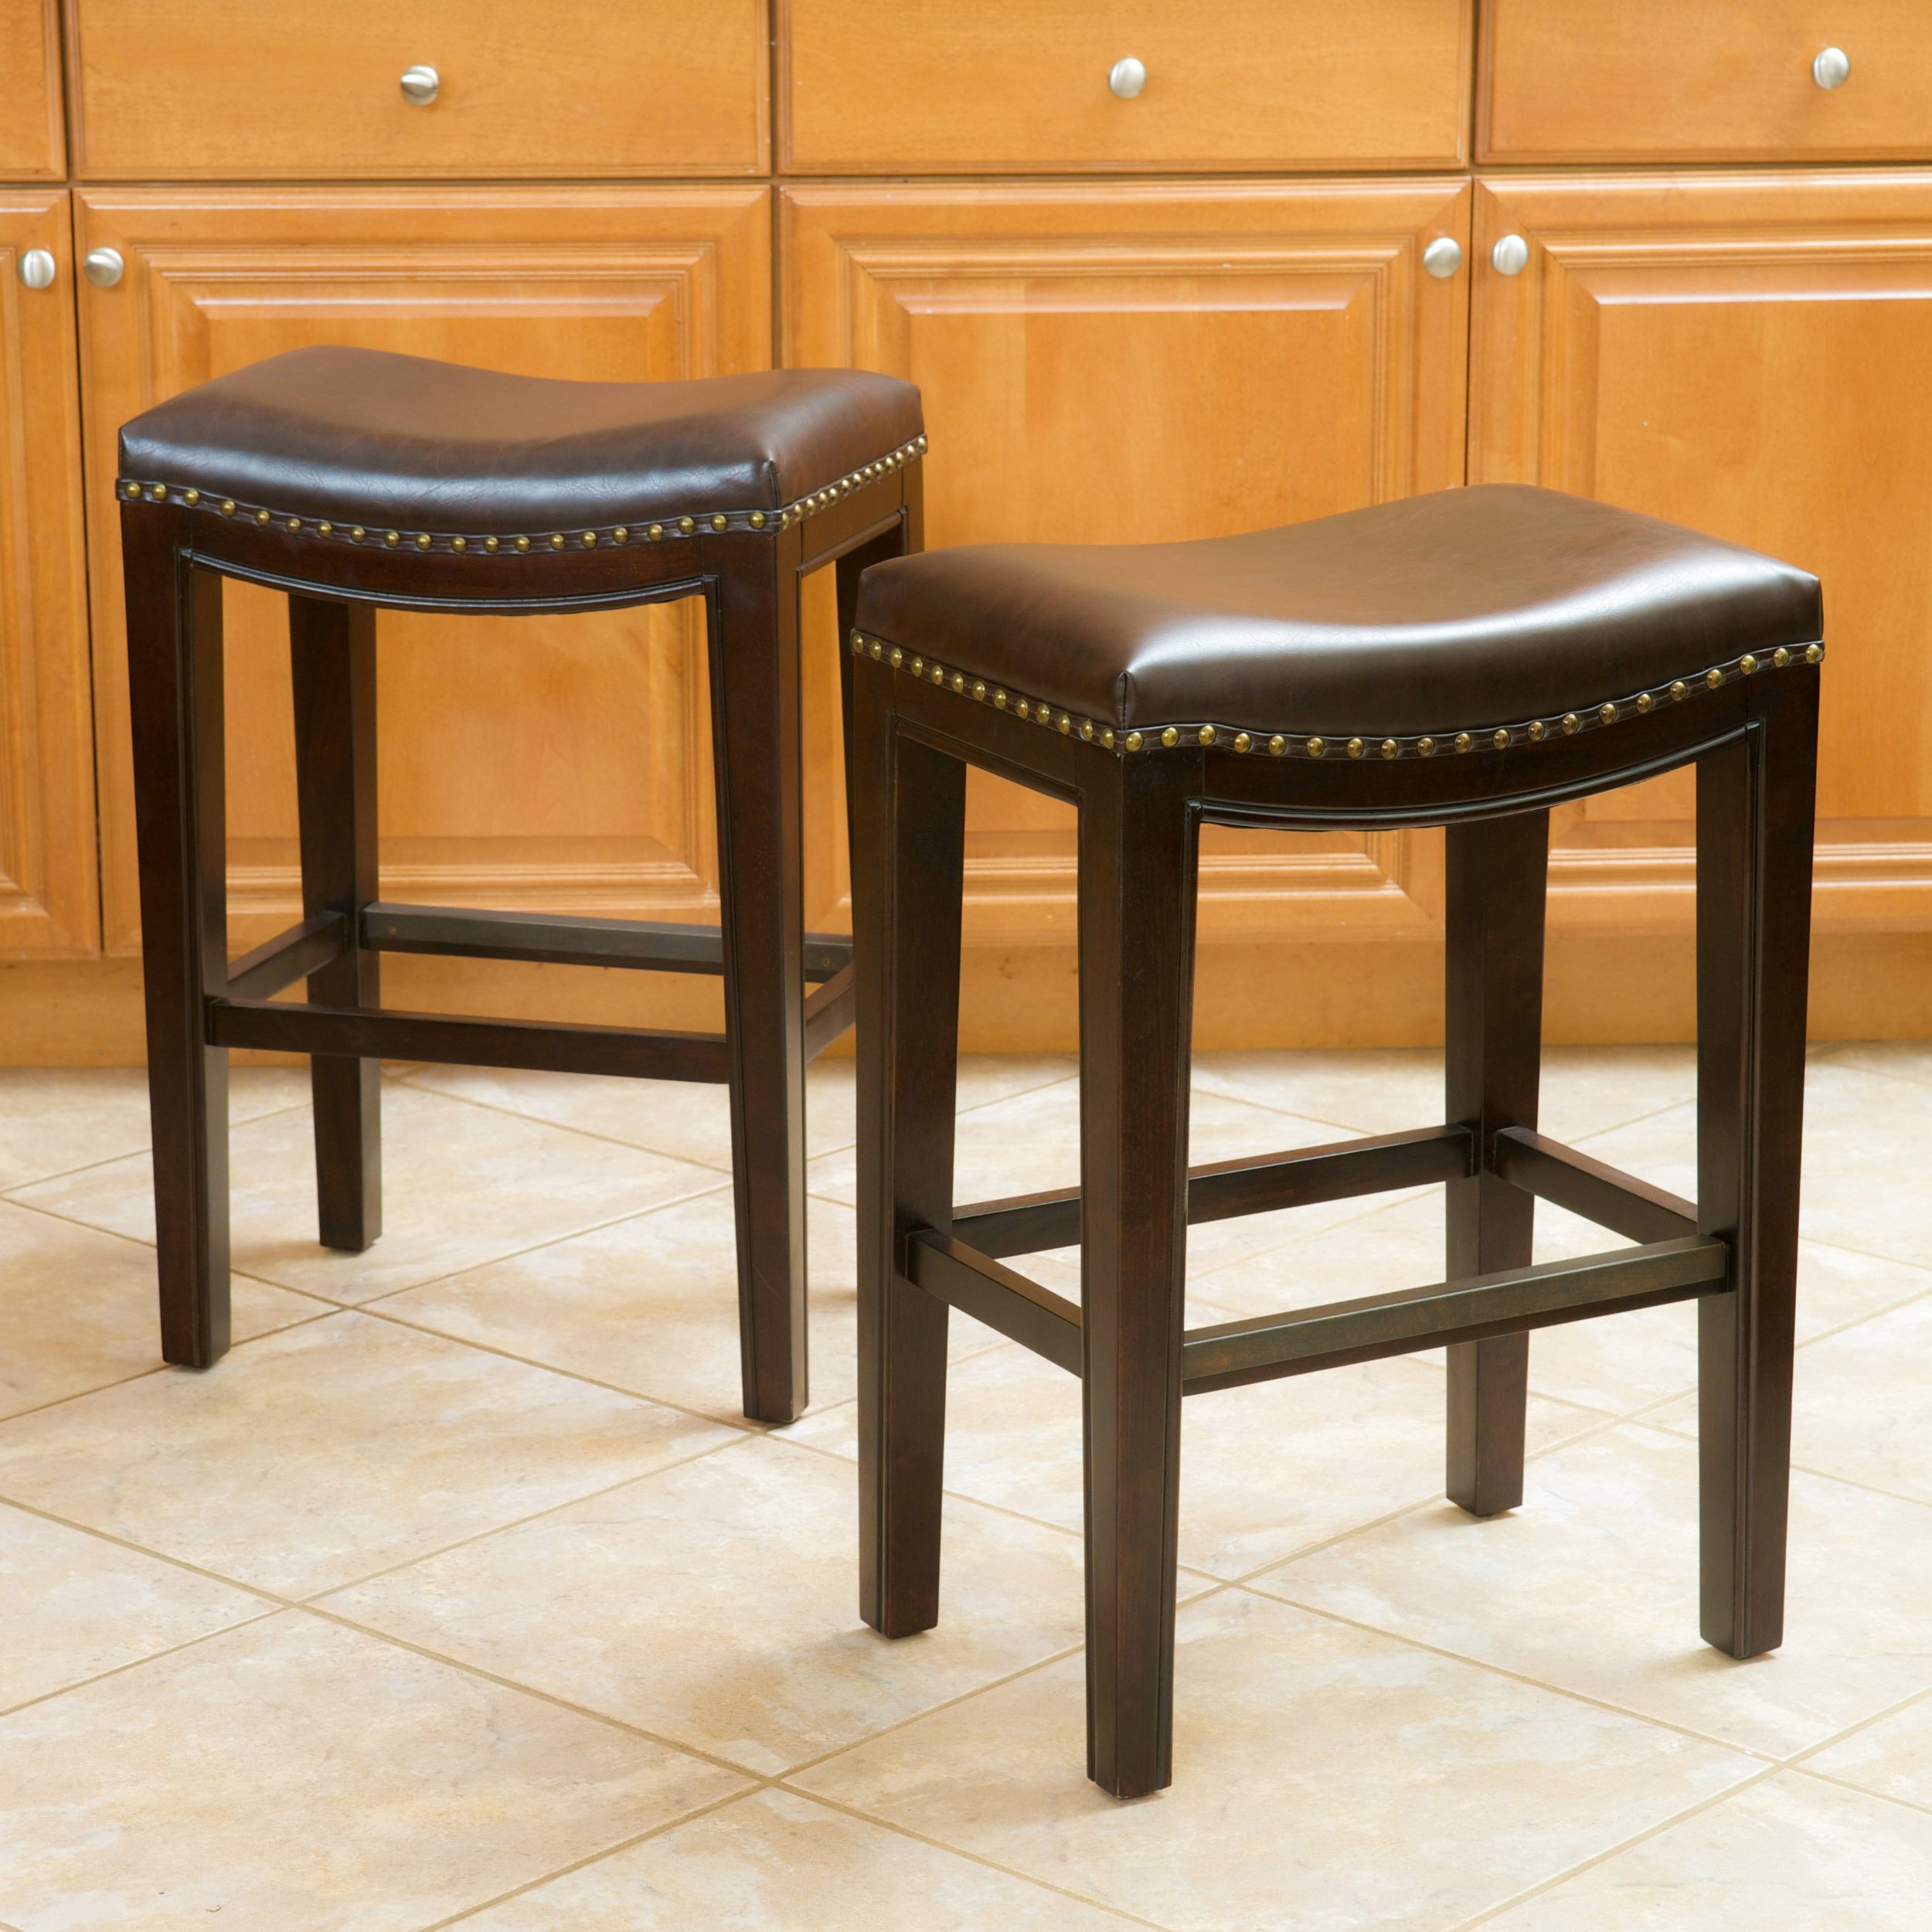 Jaeden Backless Brown Leather Counter Stools (Set of 2)